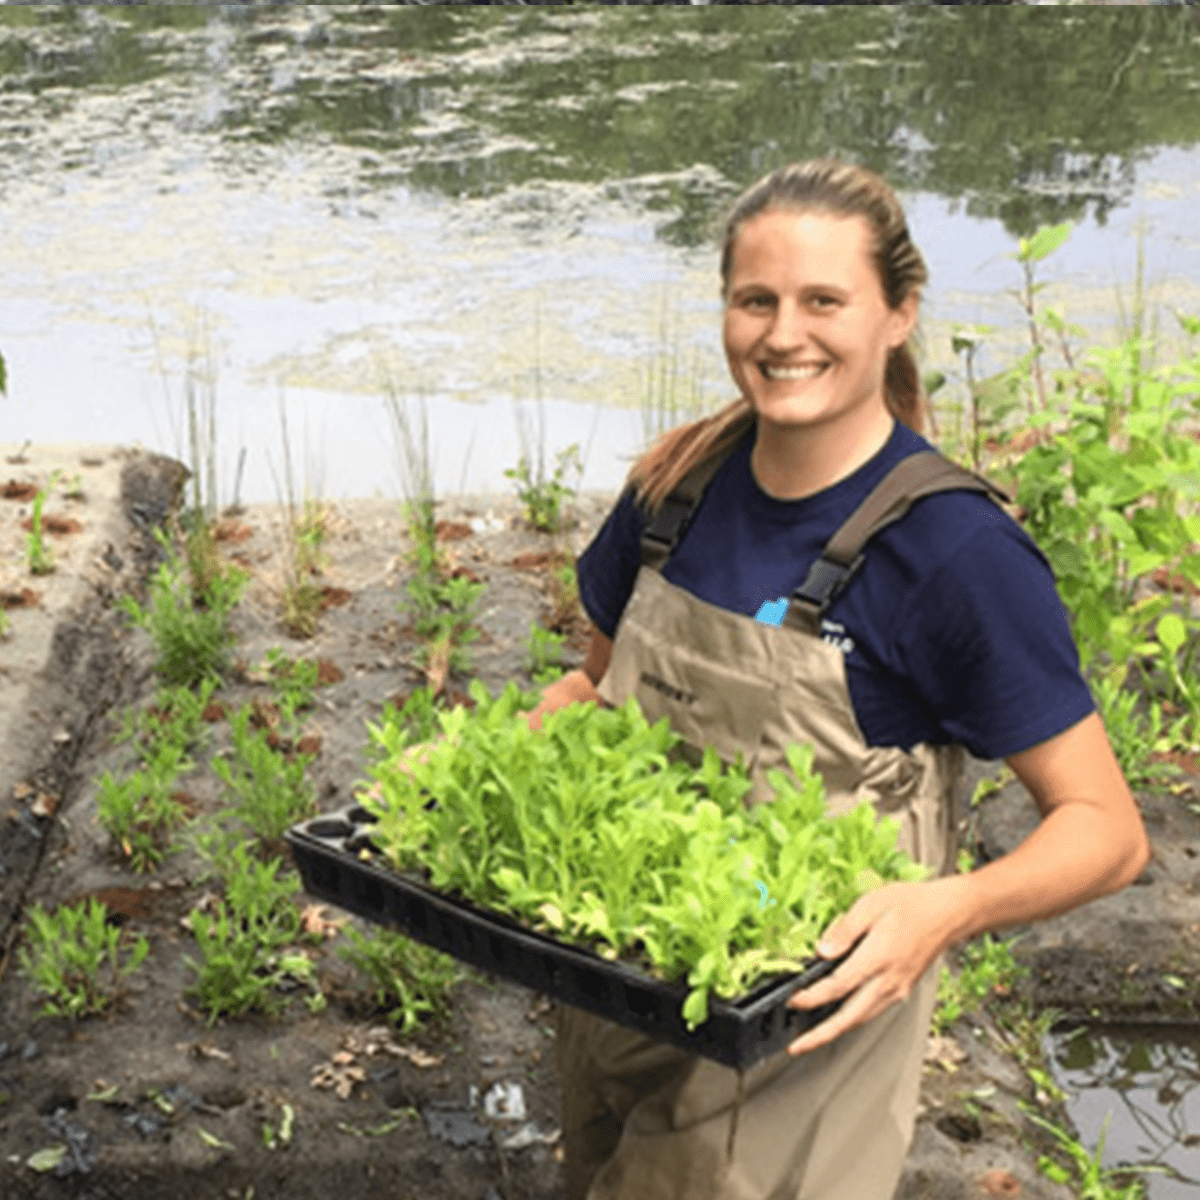 A young woman posing with her flat of aquatic plants